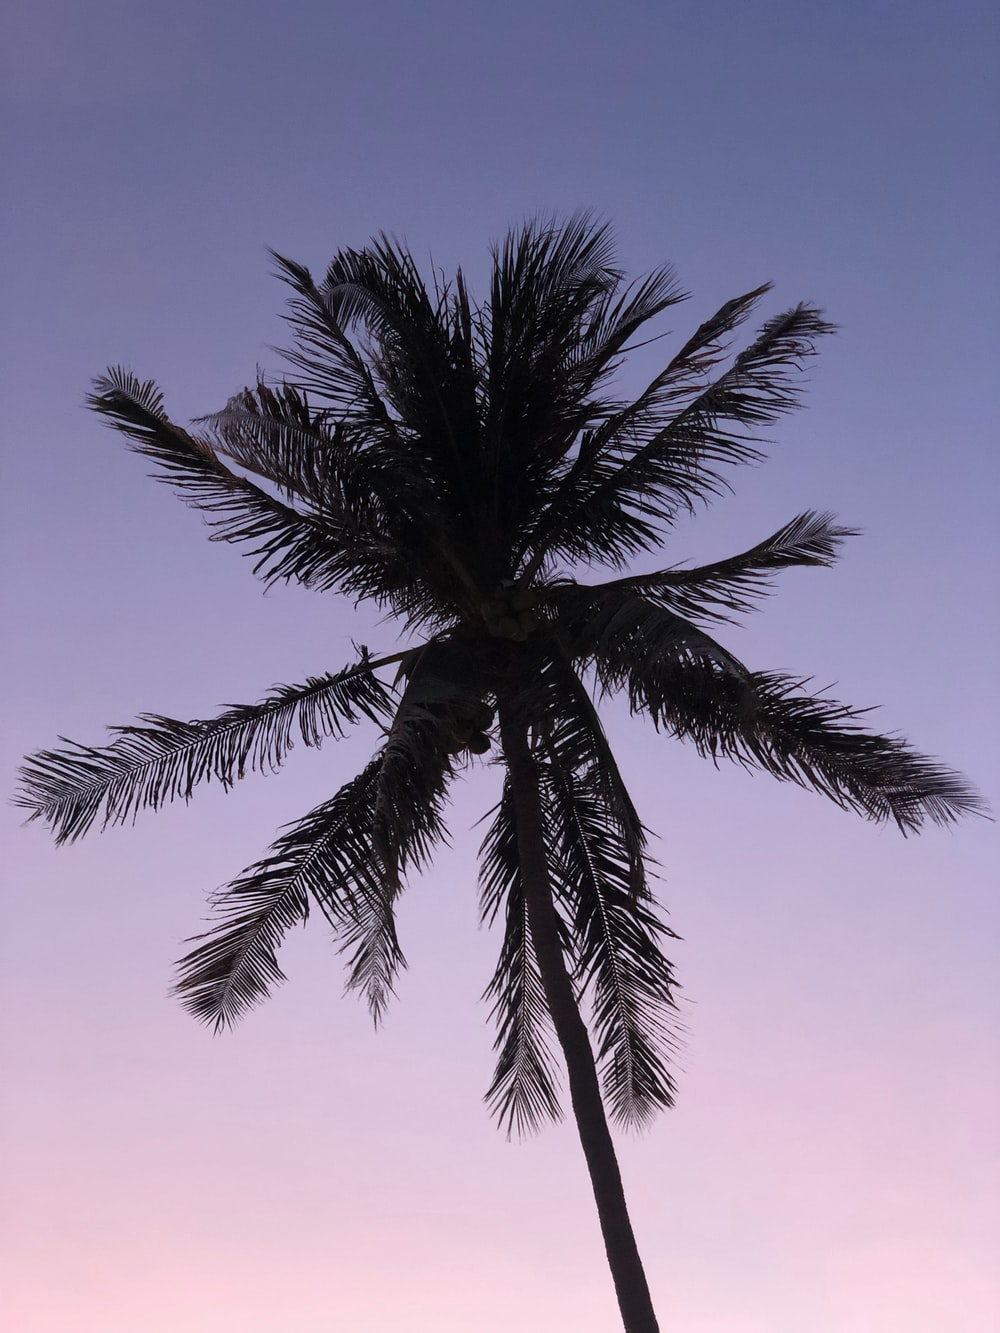 coconut tree close-up photography